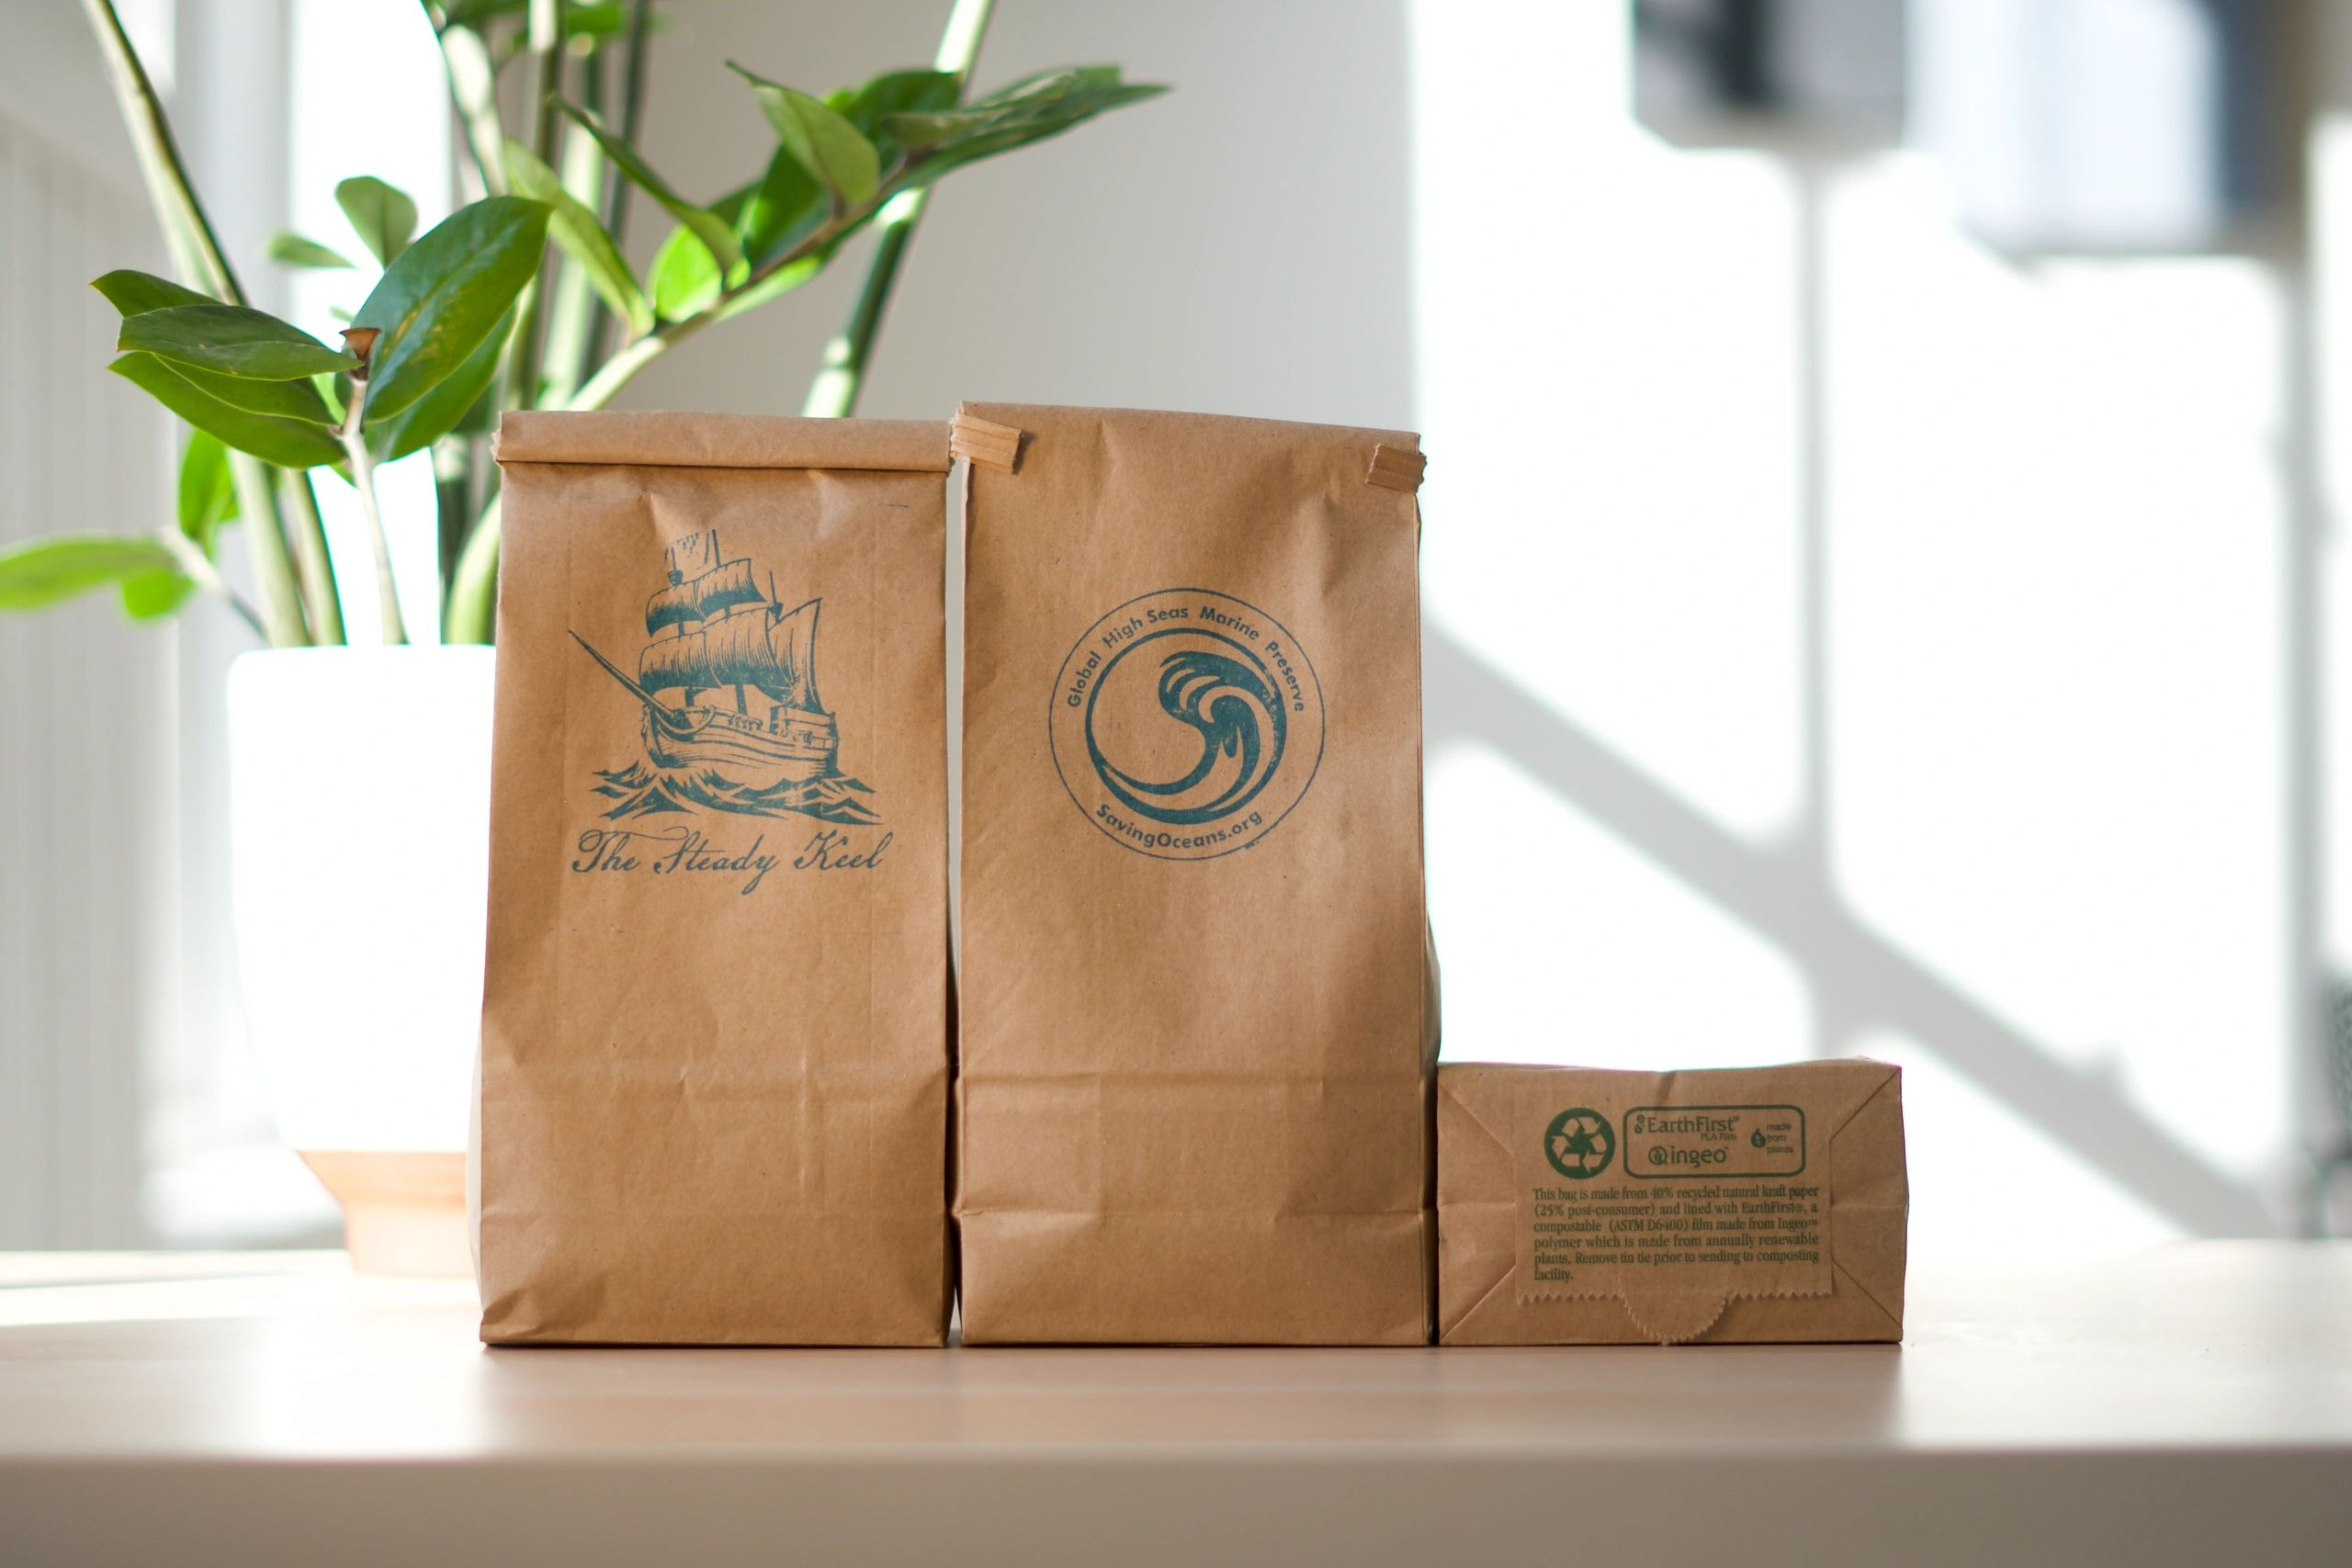 Three bags of The Steady Keel coffee sit atop a table in a well lit room.